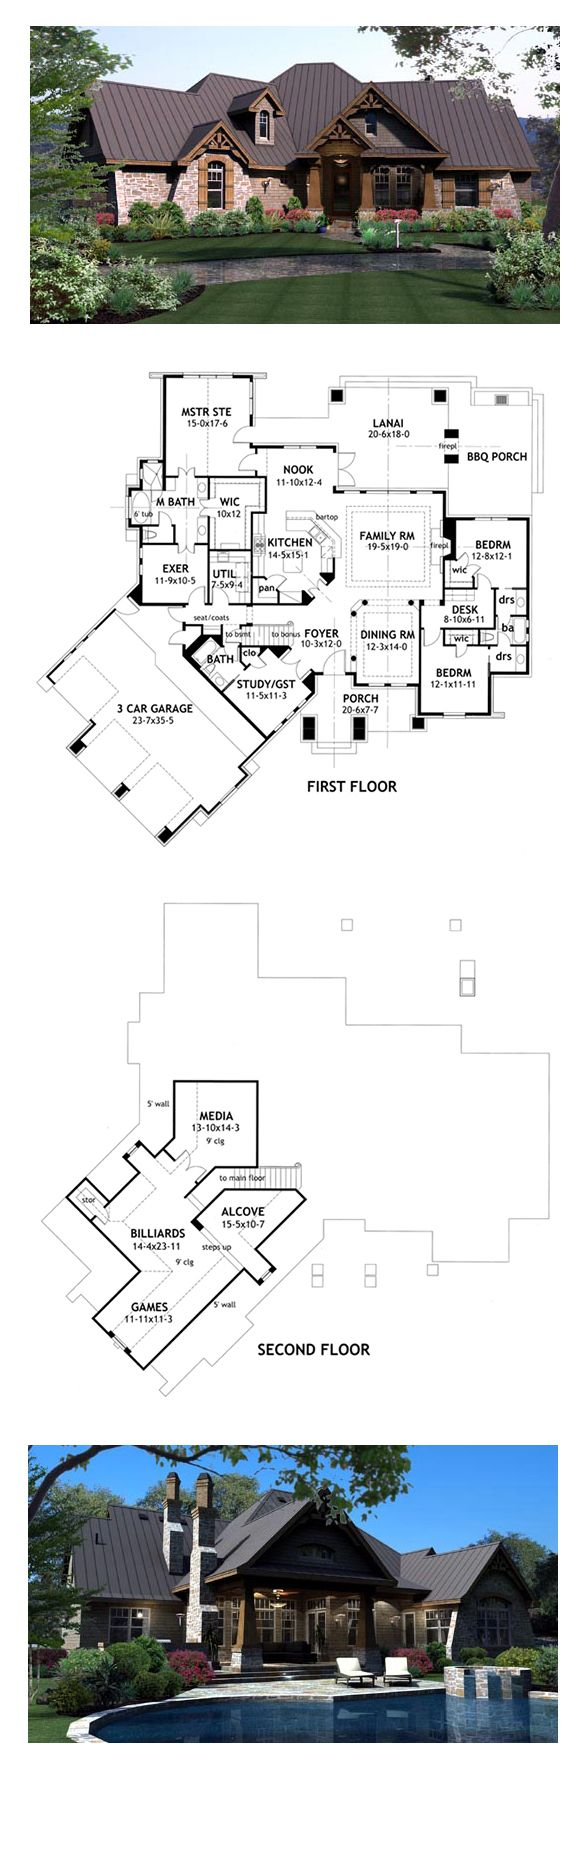 Craftsman House Plan 65869 | Total Living Area: 2847 sq. ft., 3 bedrooms and 3 bathrooms. #houseplan #craftsmanhome